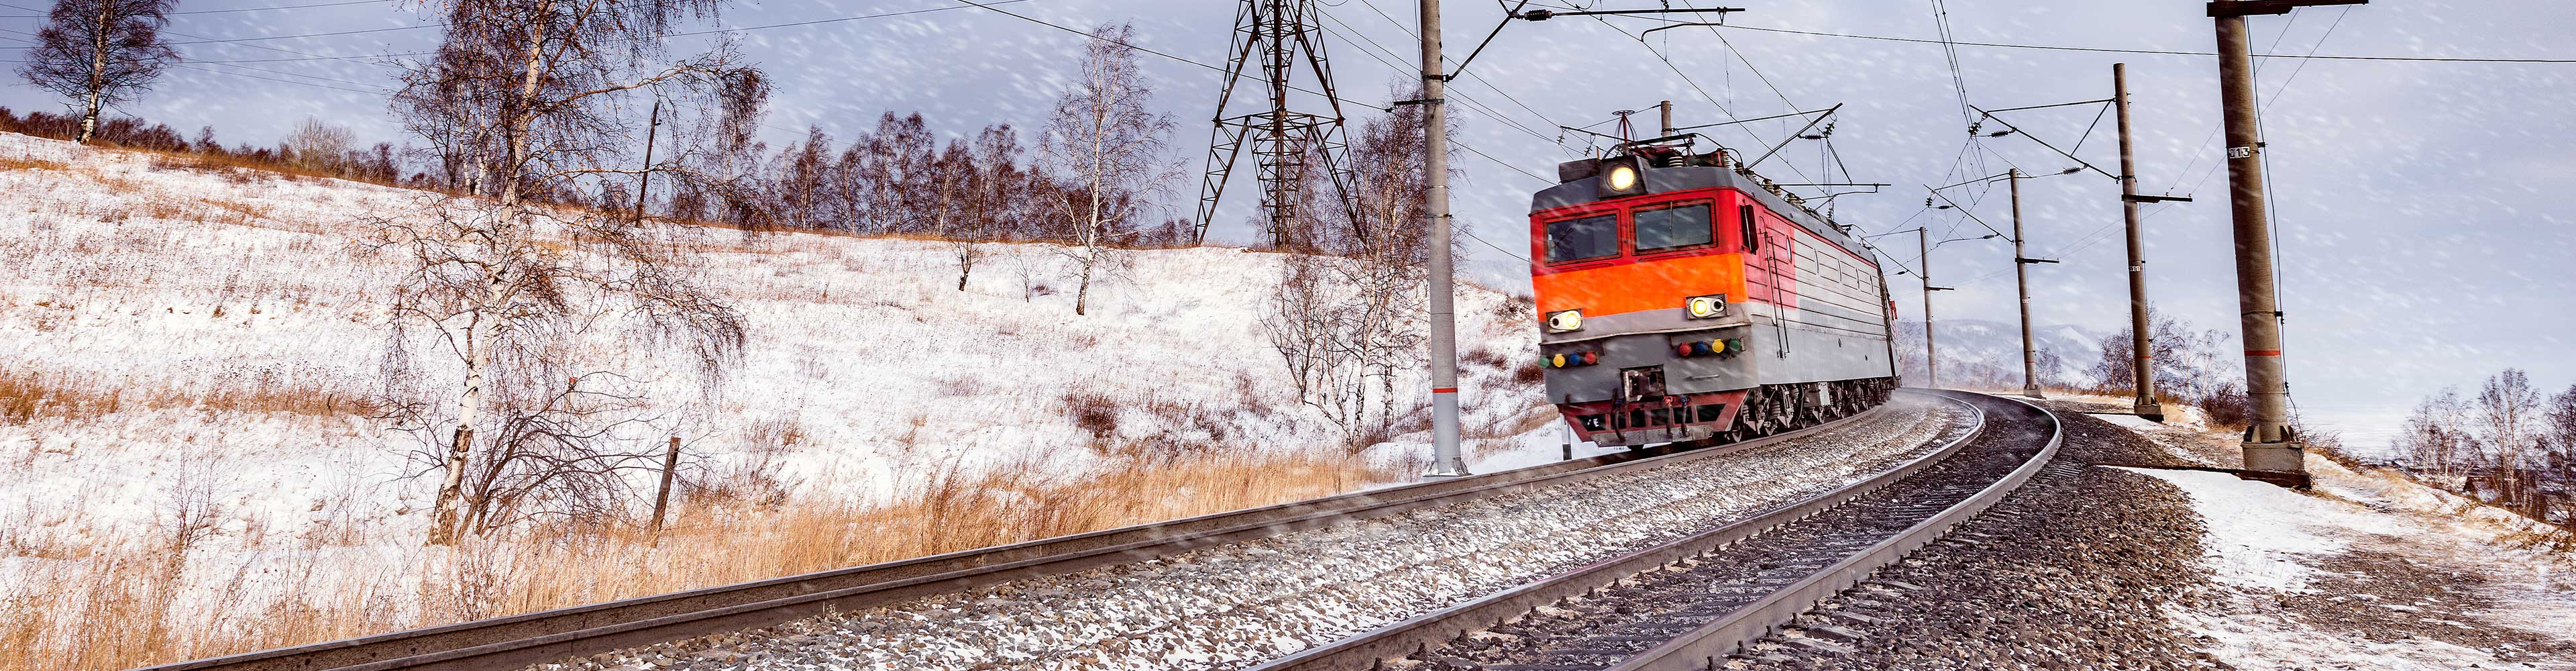 Russia Expedition: Winter Trans-Siberian Adventure